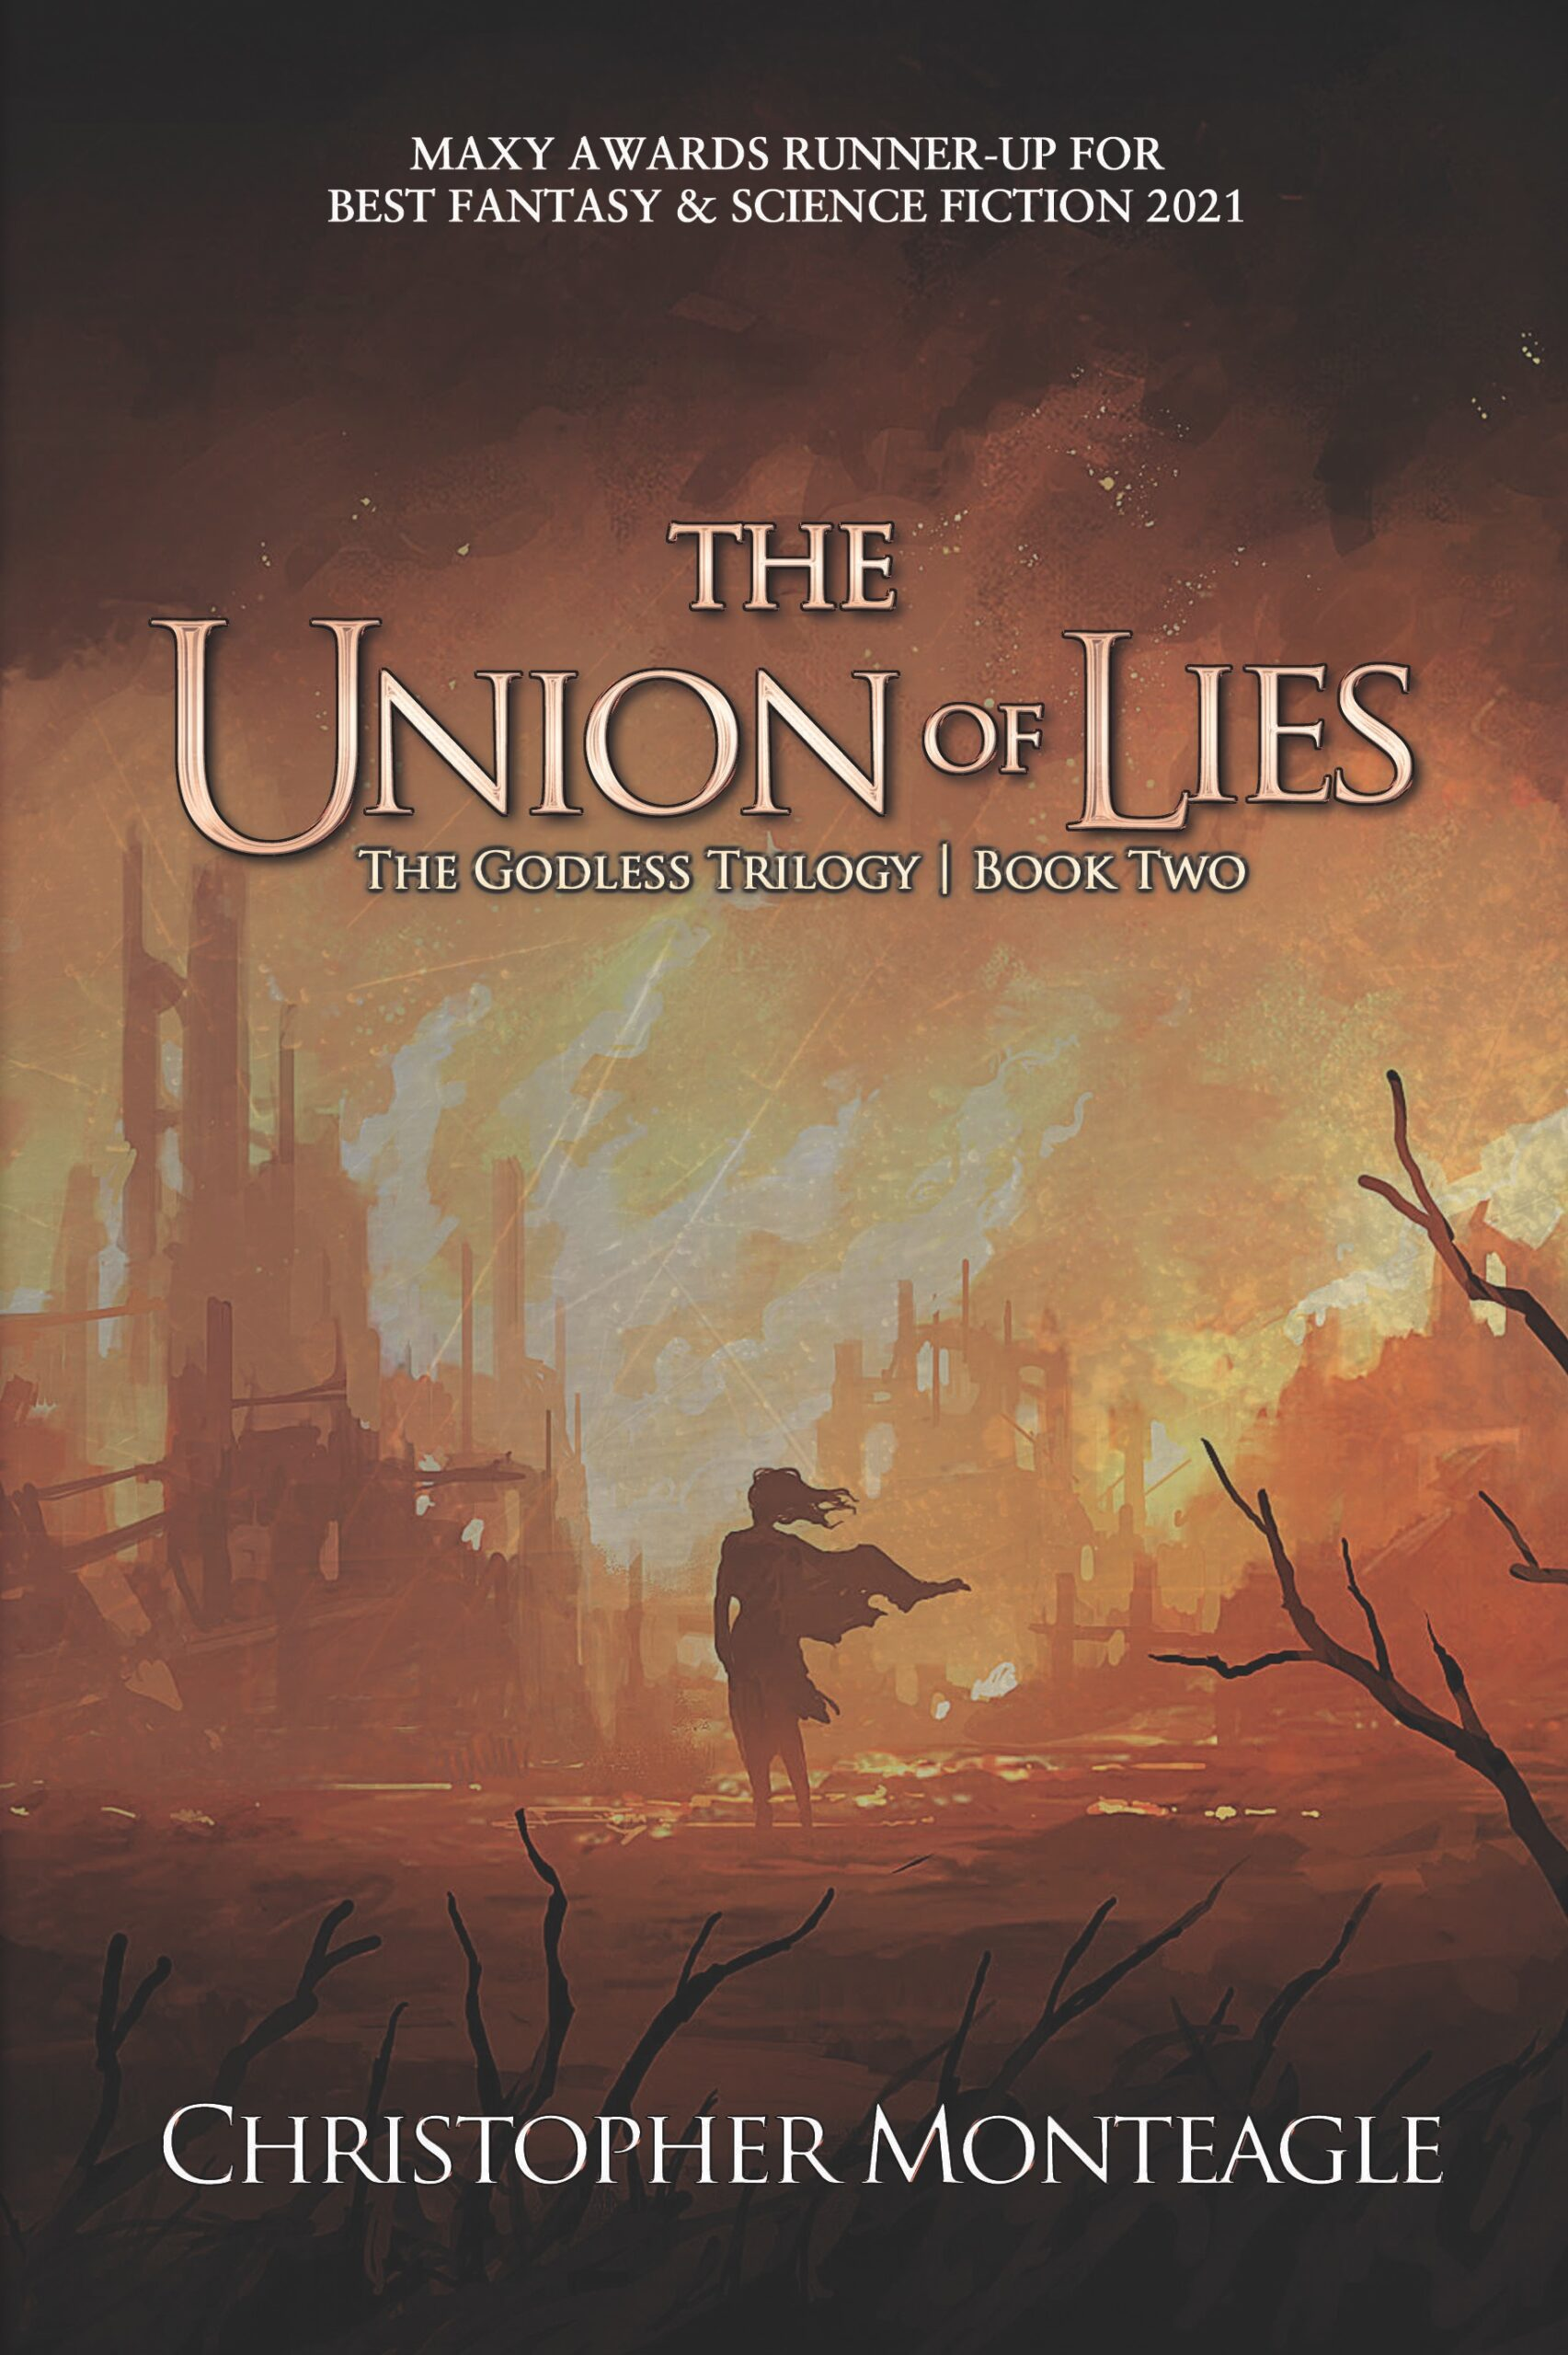 The Union of Lies